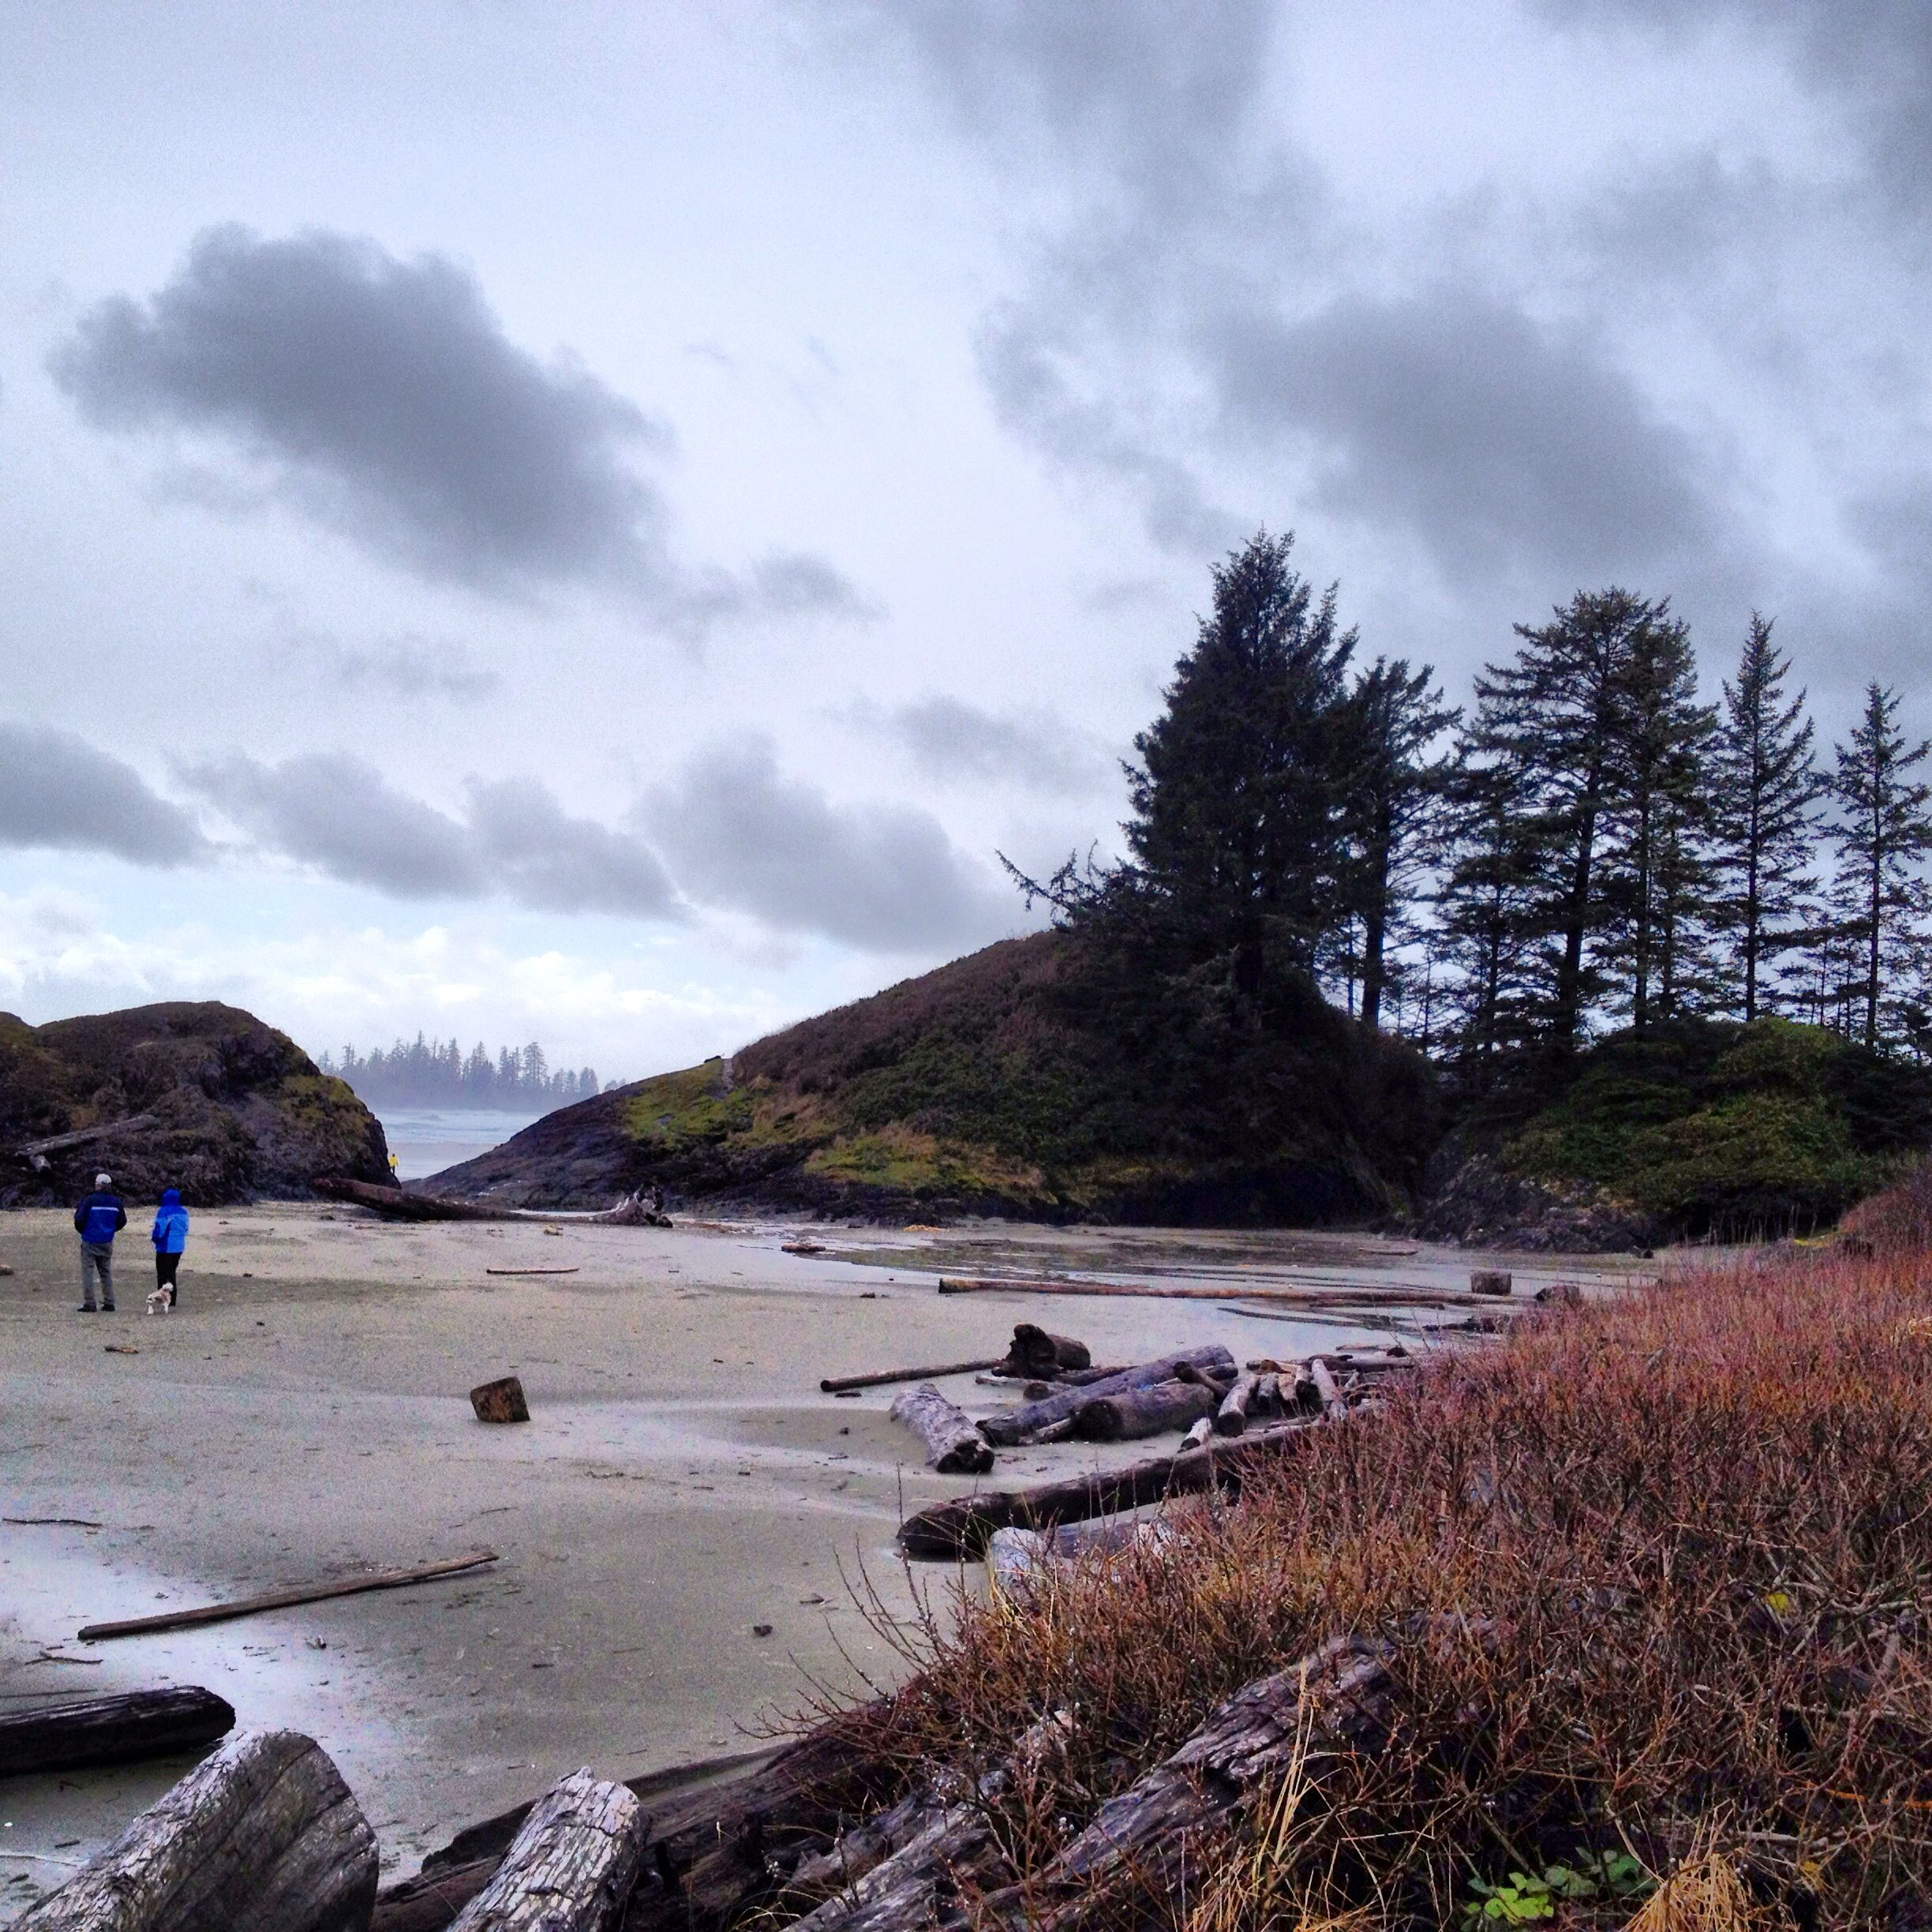 Places To Visit In Vancouver During Summer: Tofino (Long Beach), BC